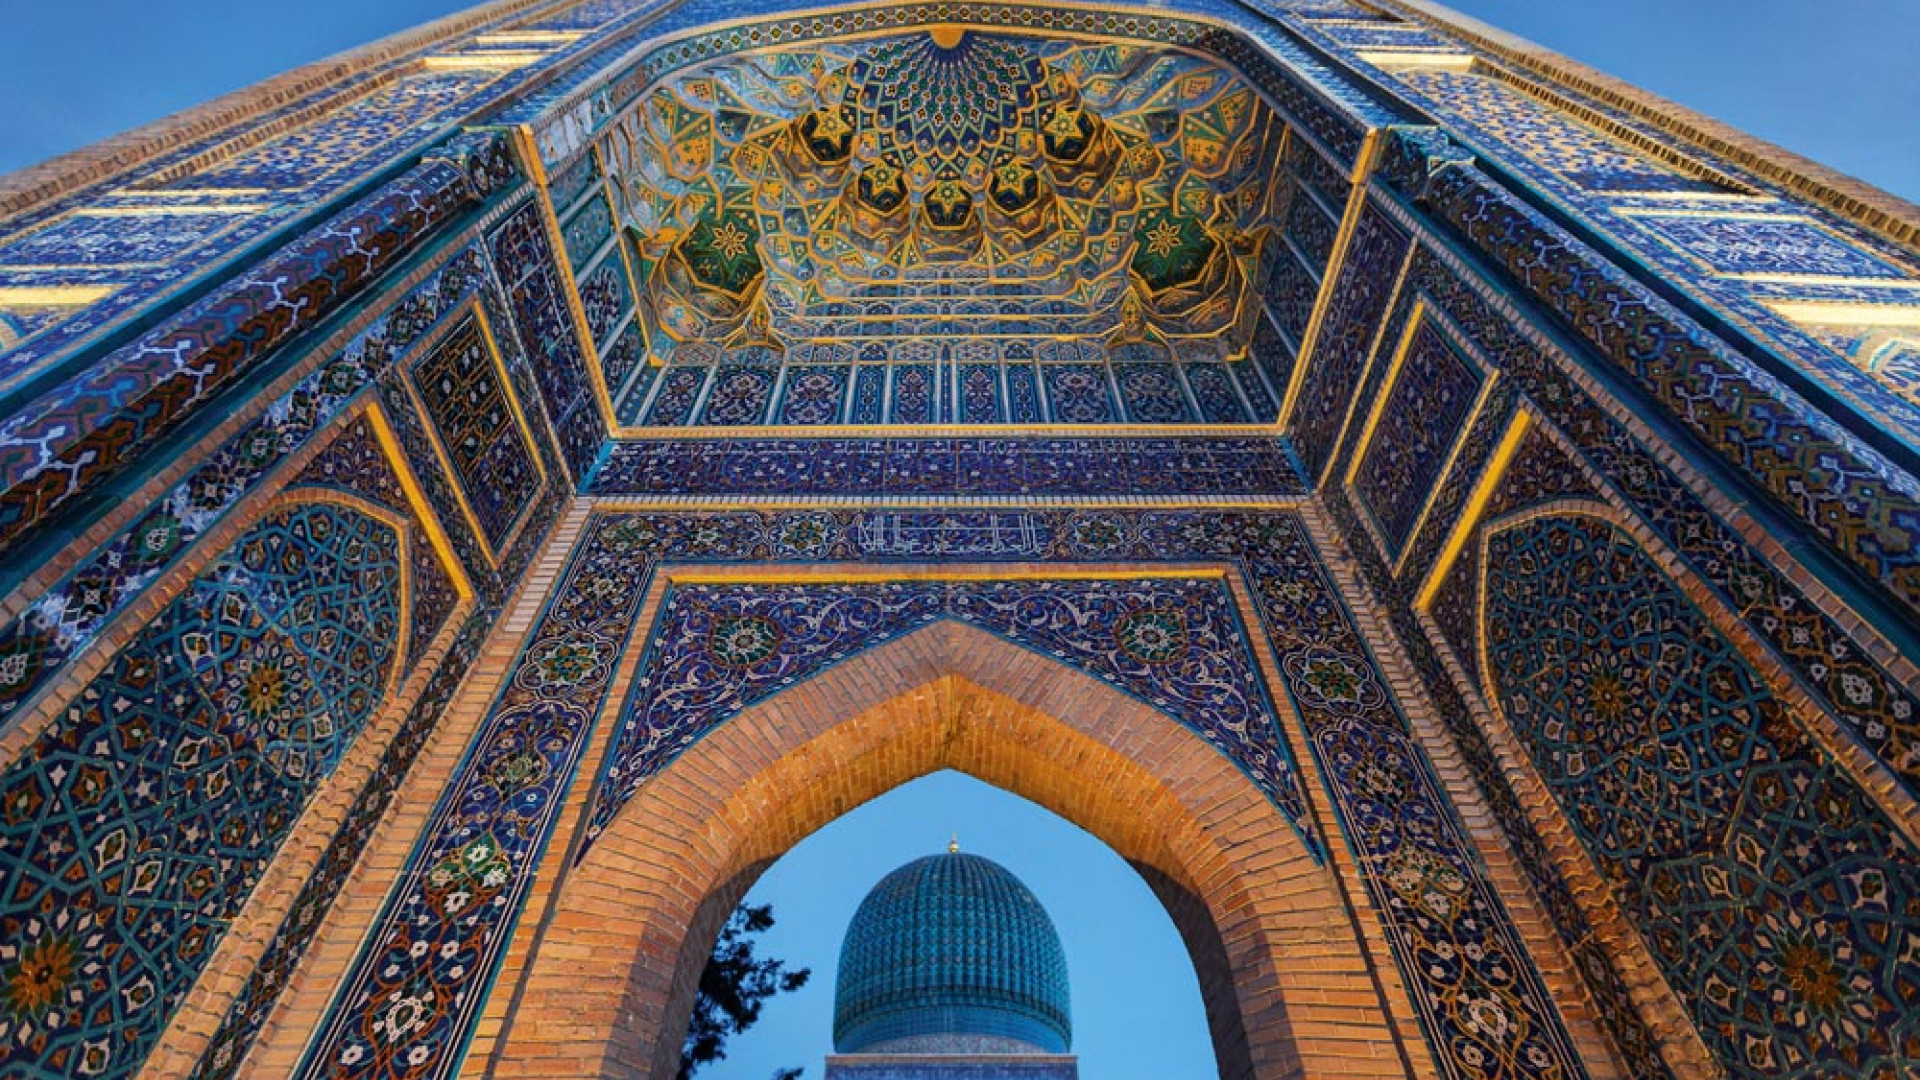 Monumental gate of the mausoleum of Tamerlane in Samarkand, Uzbekistan